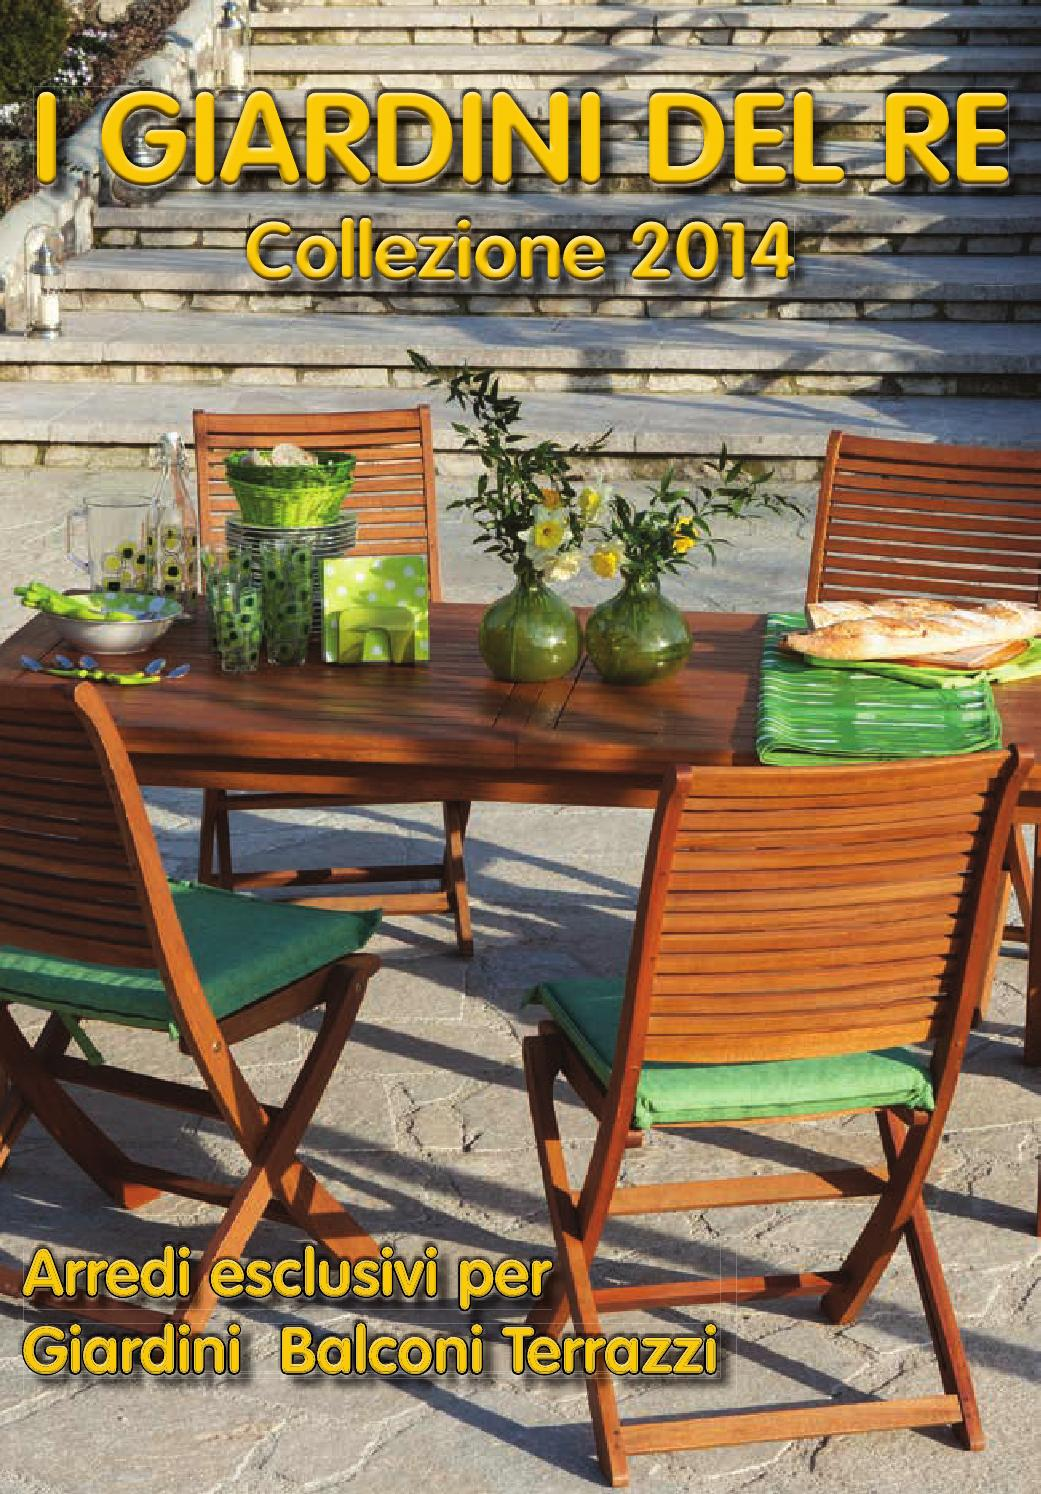 I giardini del re 2014 by generale issuu for Leroy merlin catalogo generale